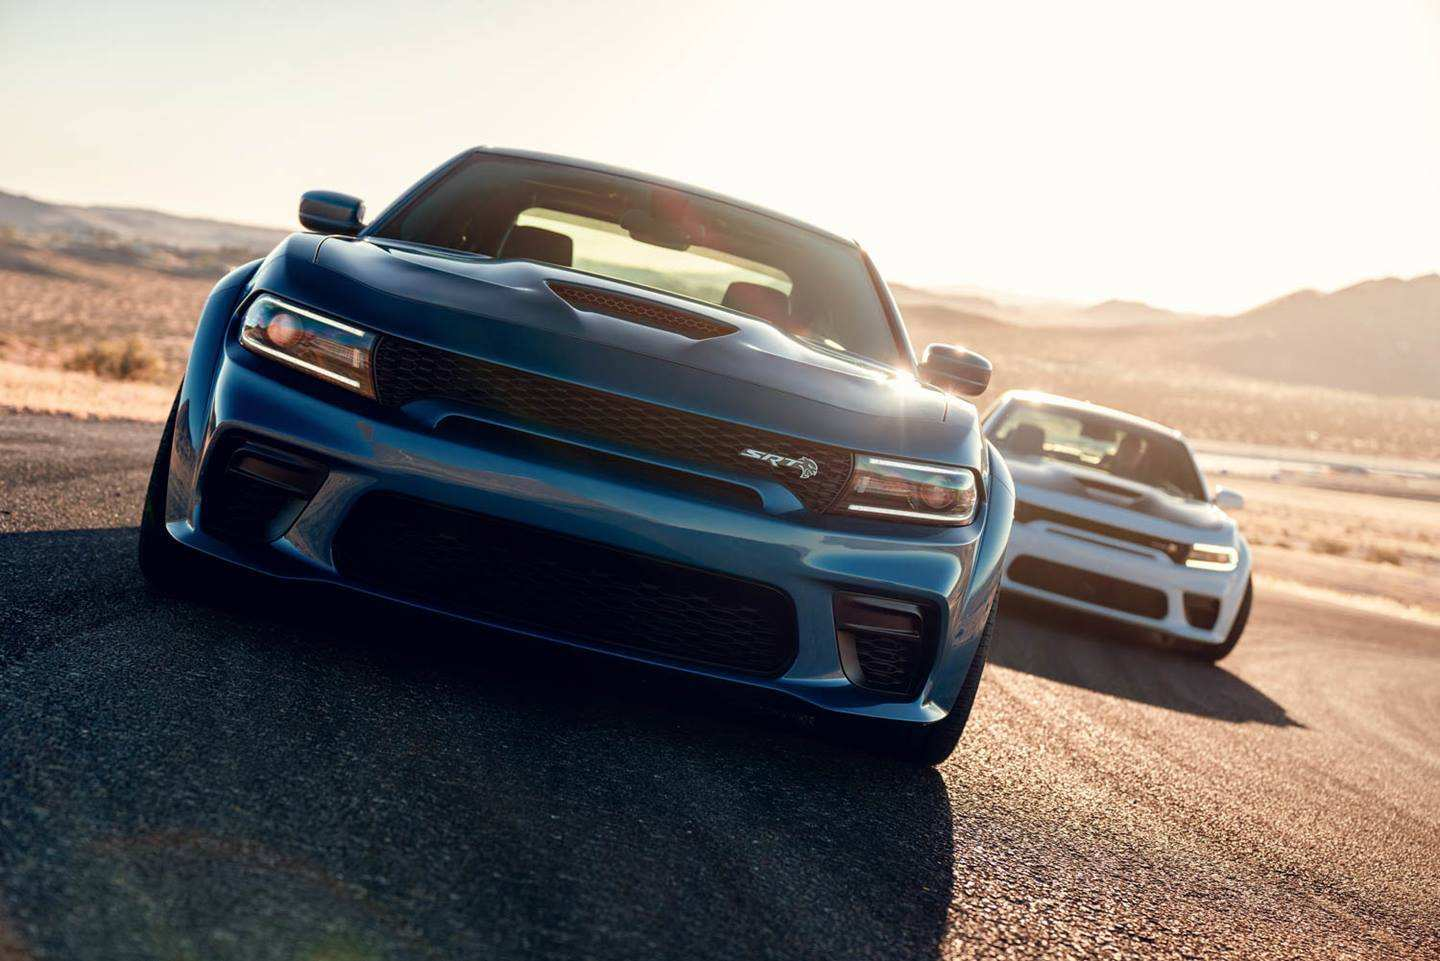 41 All New 2020 Dodge Charger Scat Pack Widebody New Review